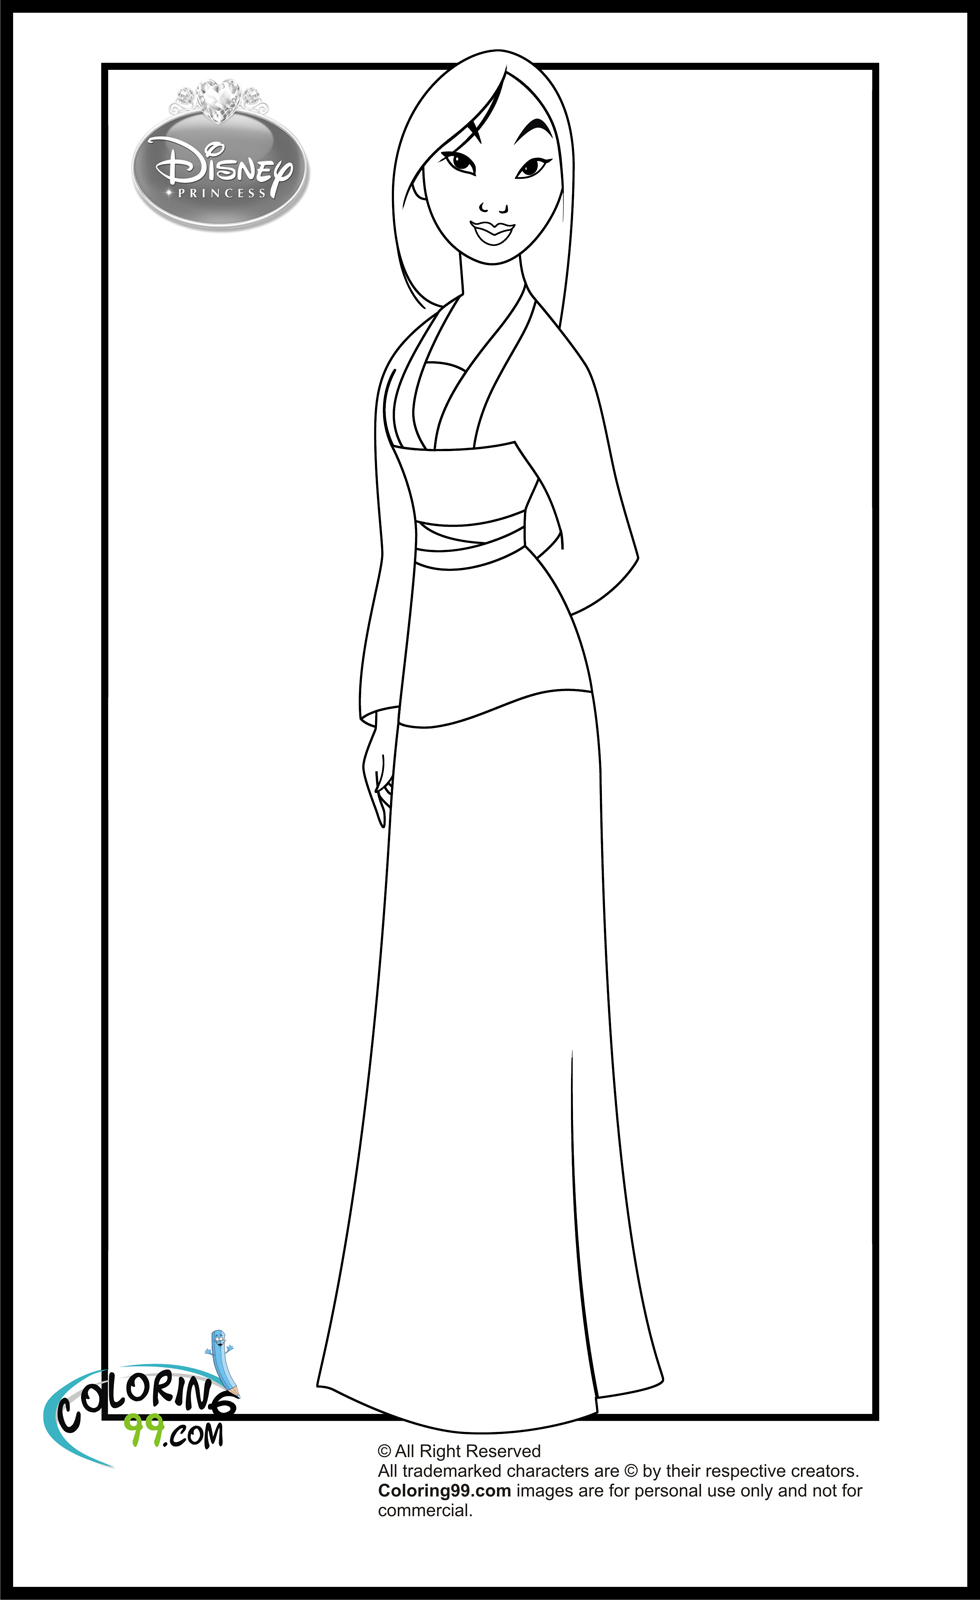 Disney Princess Coloring Pages Minister Coloring Princess Mulan Coloring Pages Free Coloring Sheets